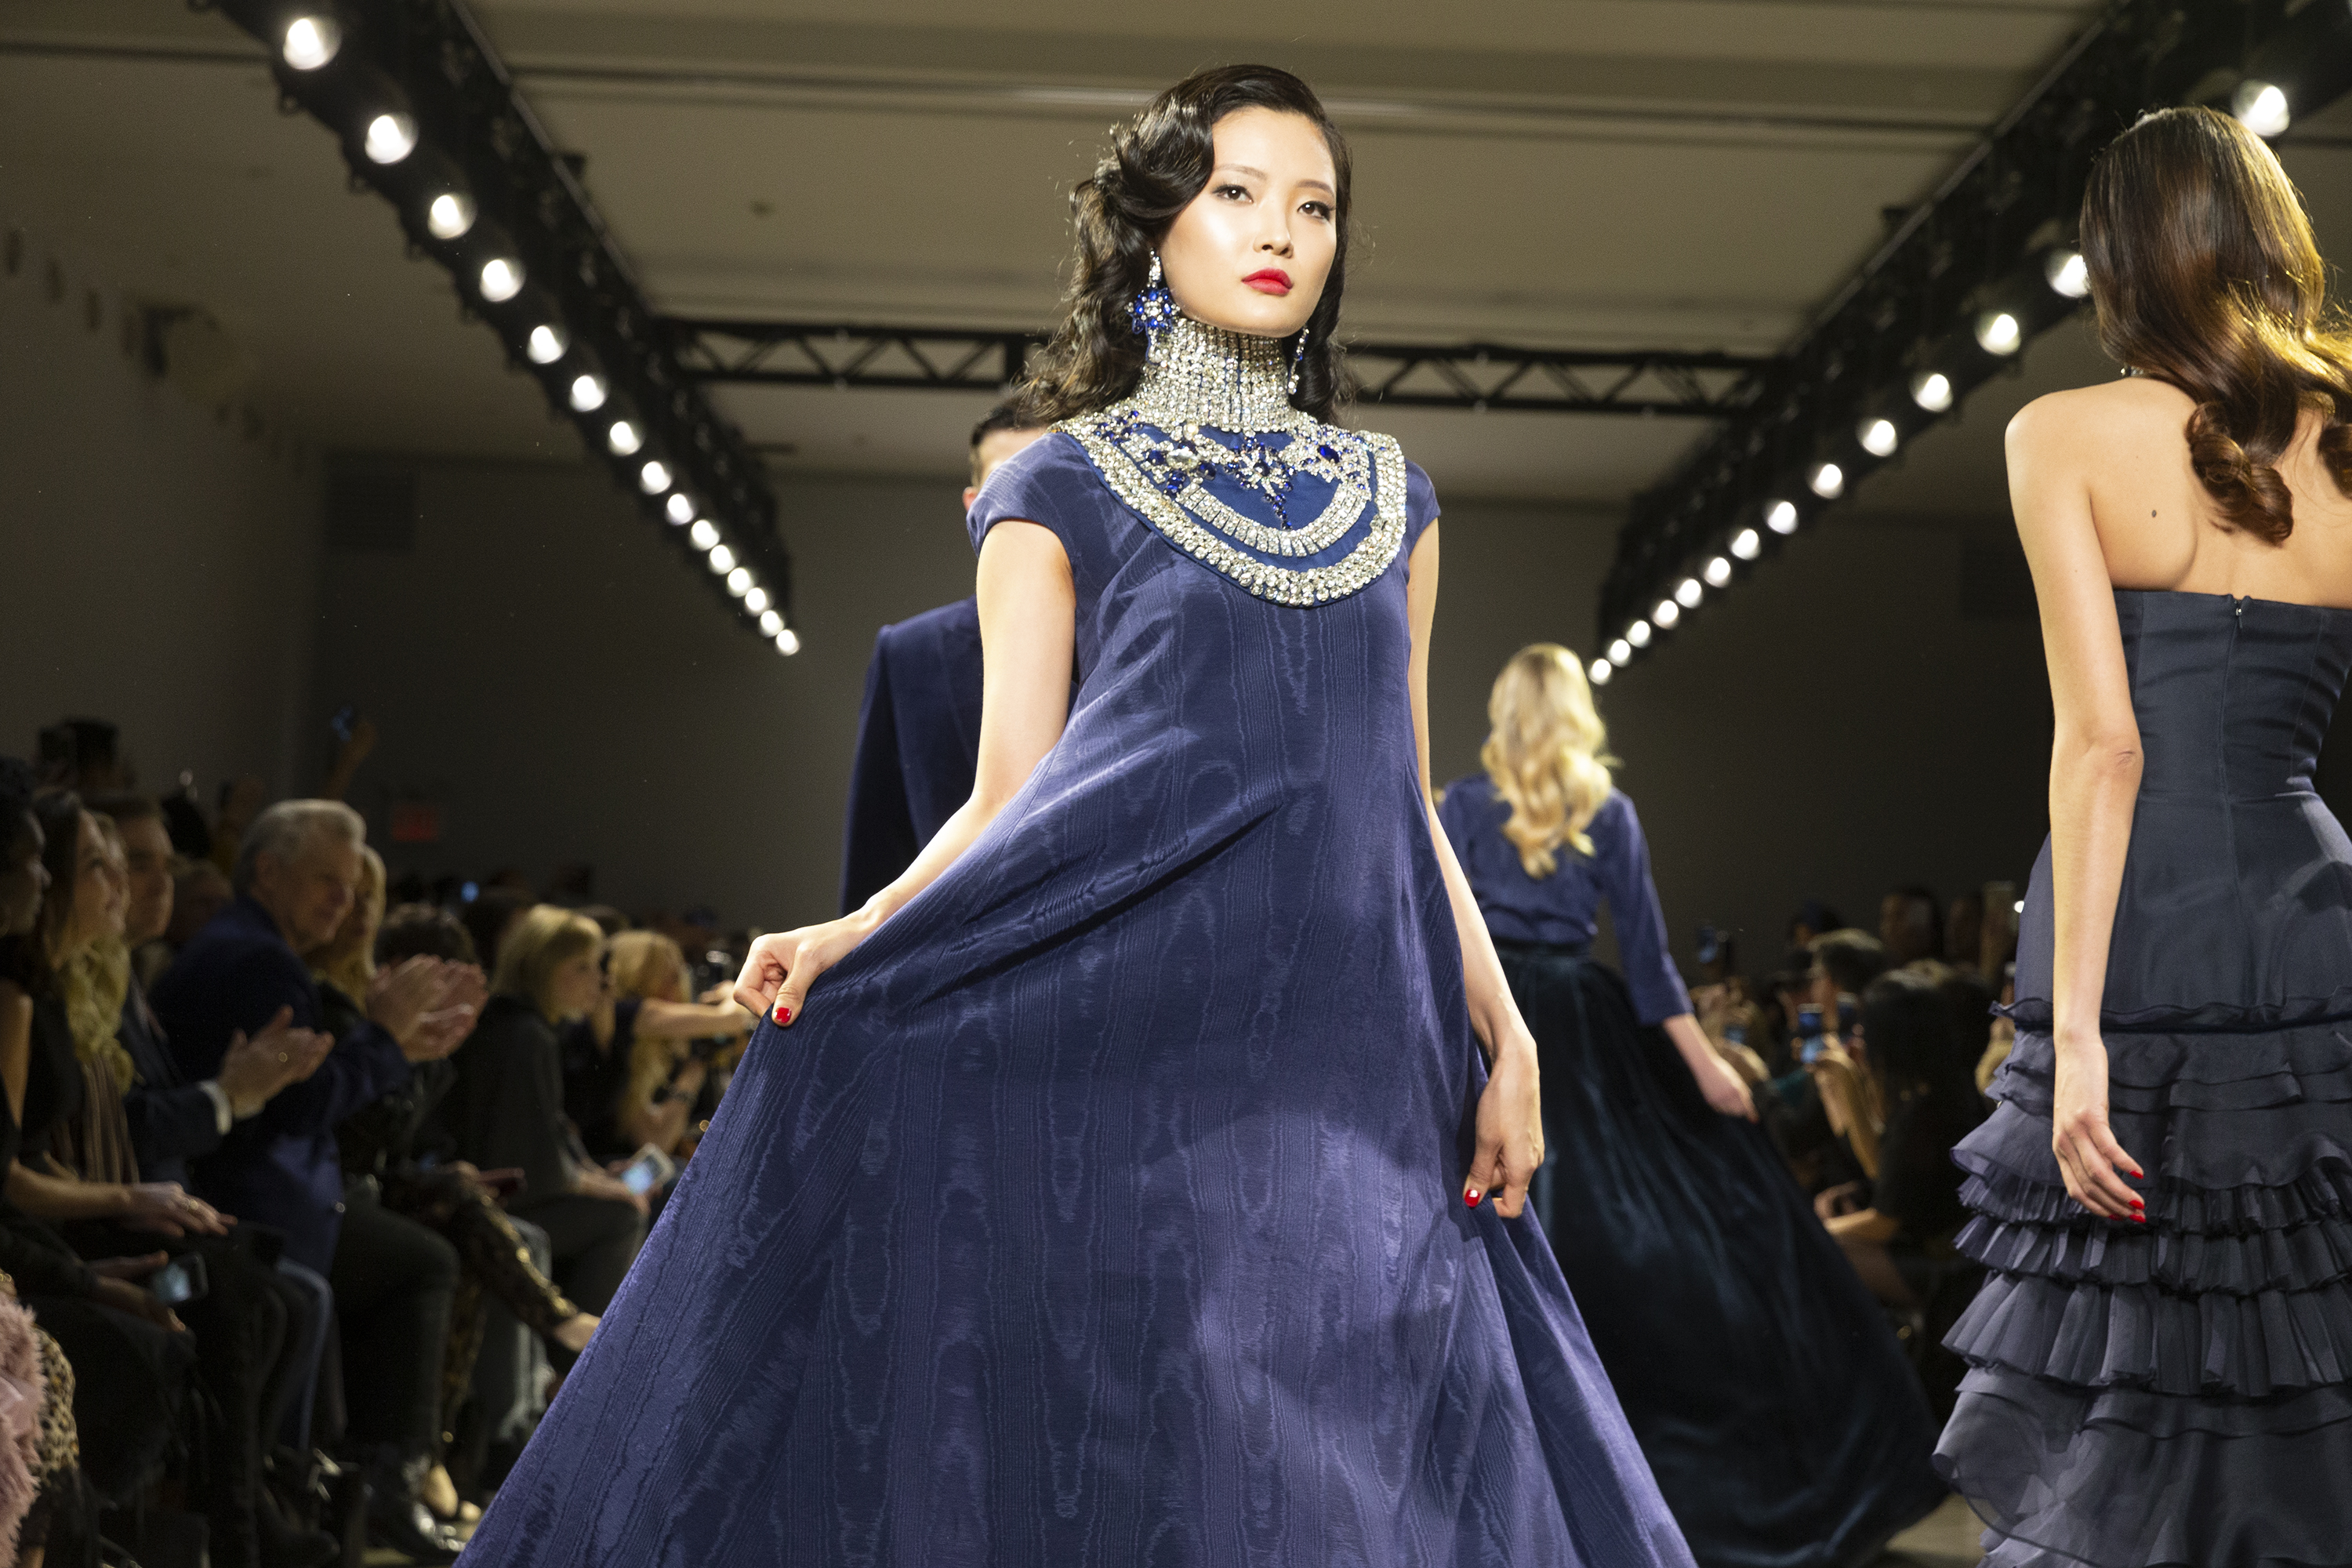 Model walks runway for Zang Toi Fall/Winter collection